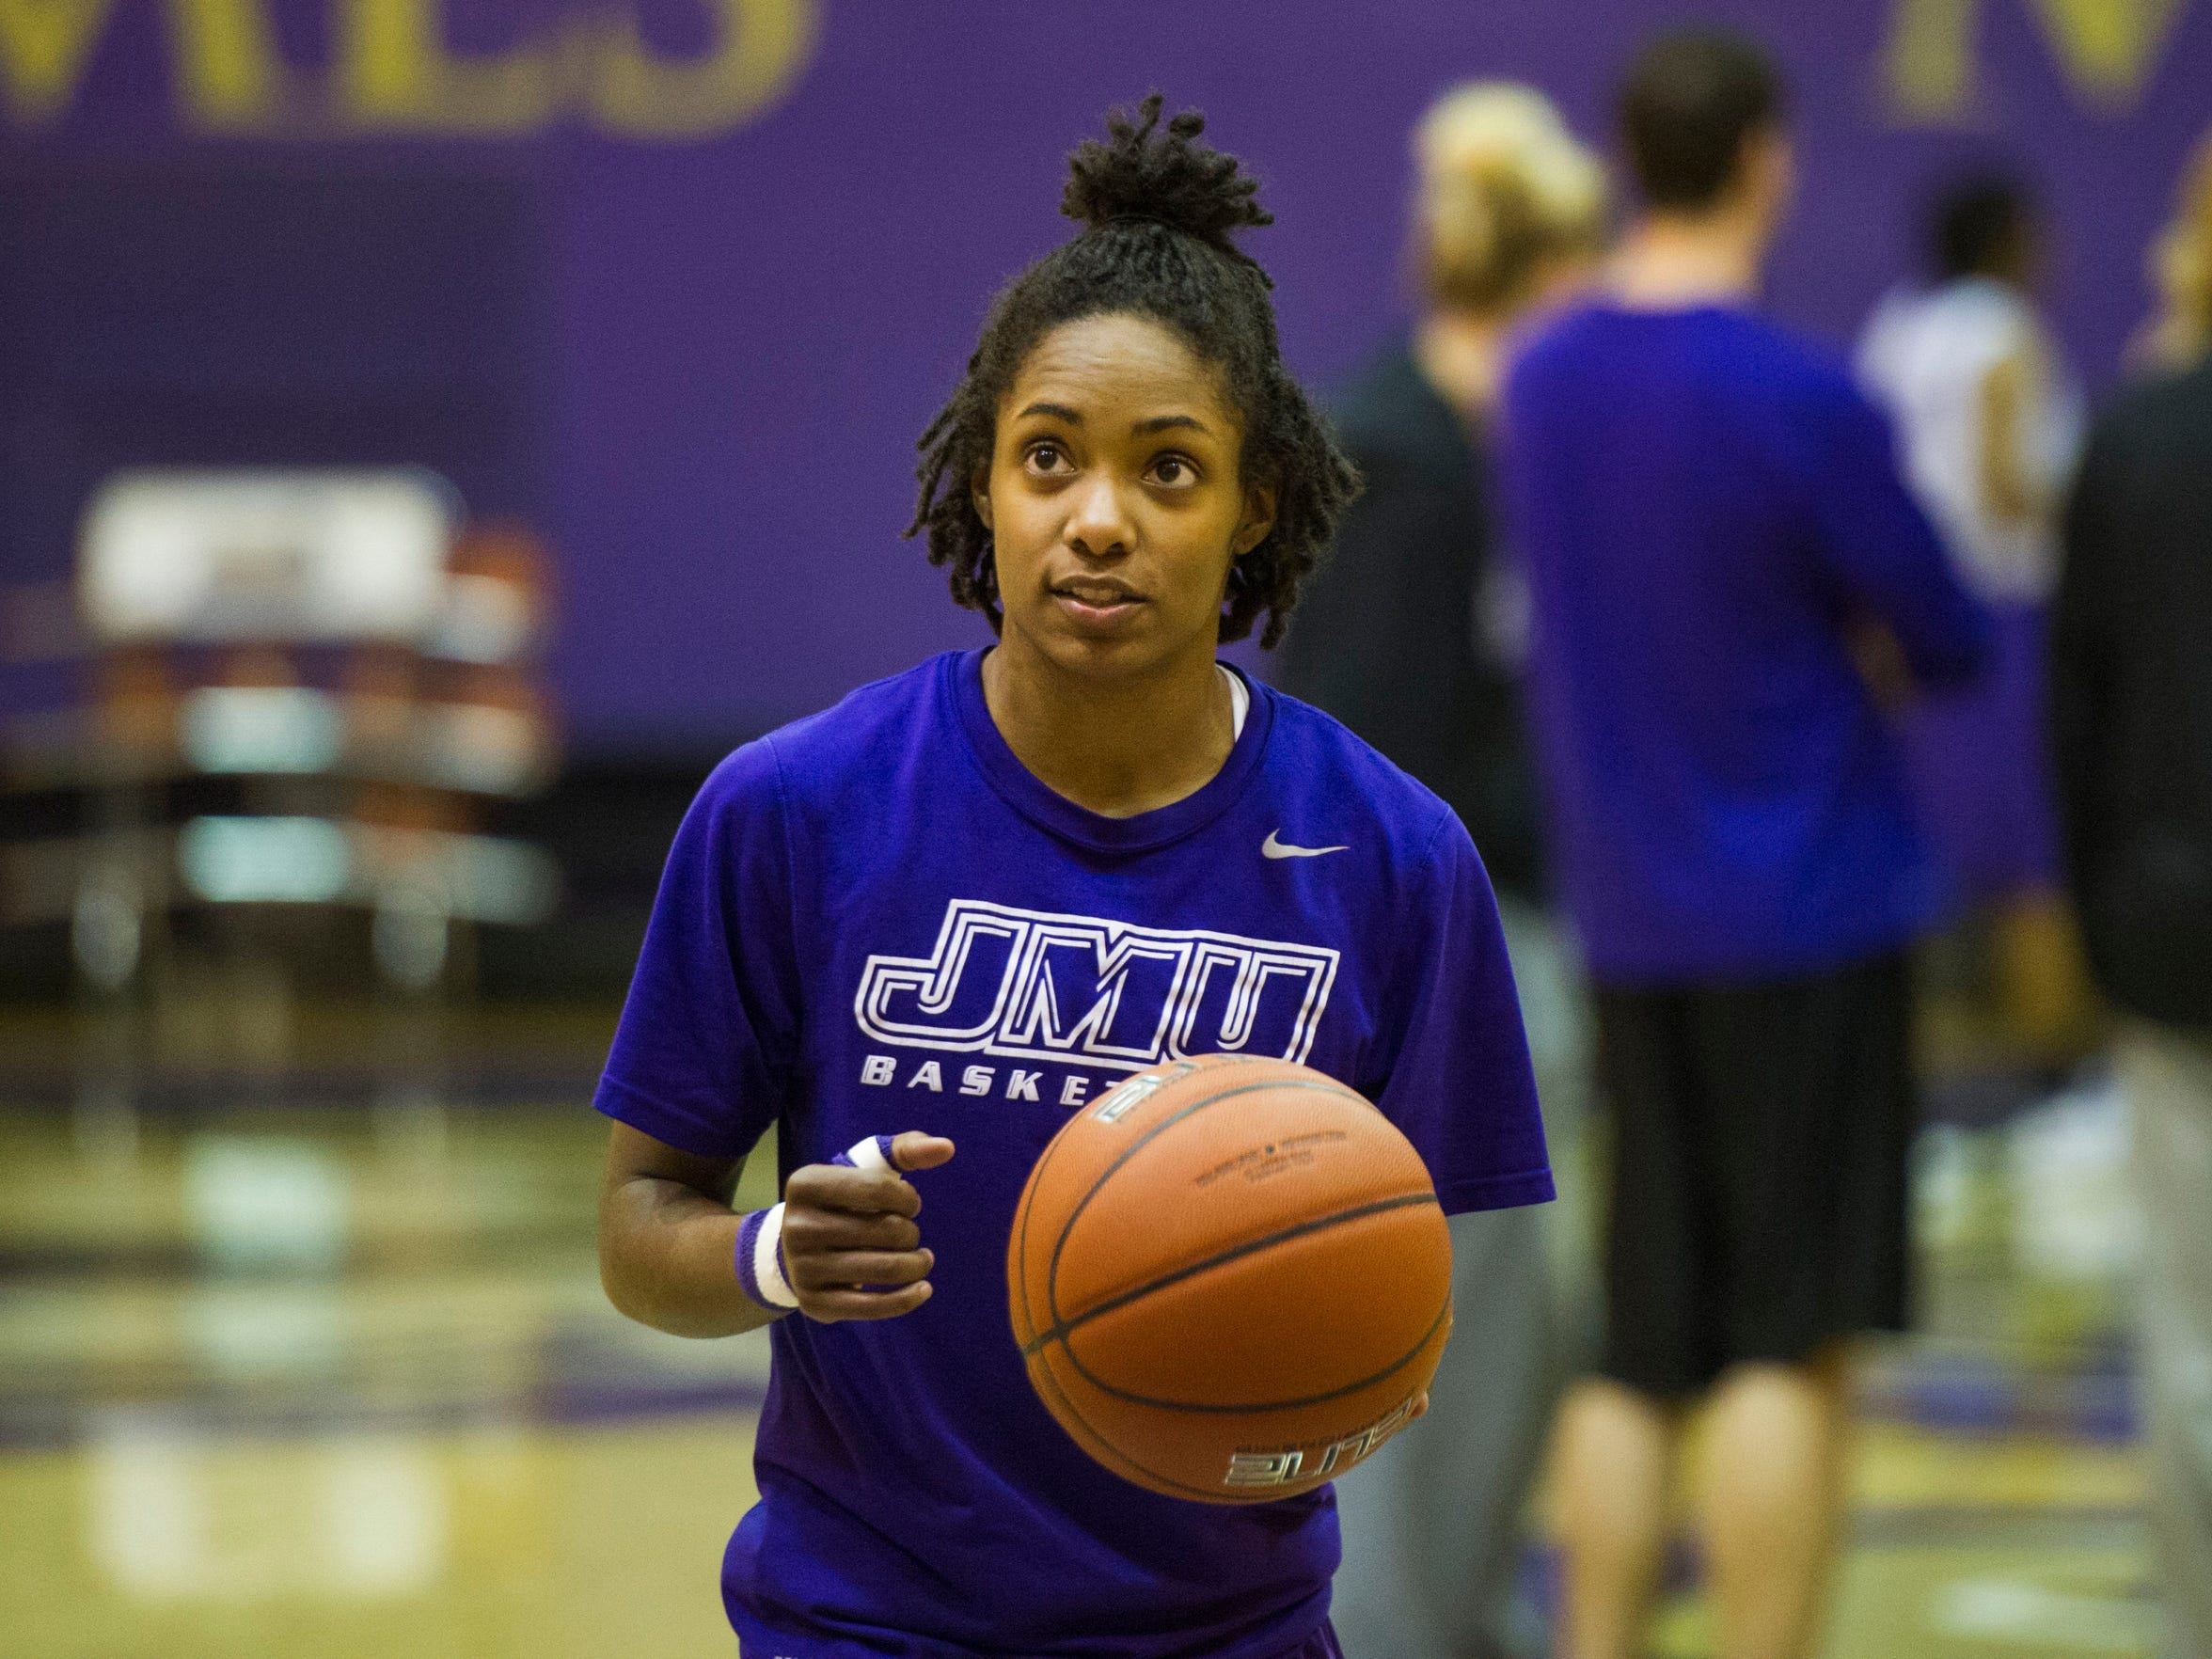 Angela Mickens, a point guard for James Madison University's